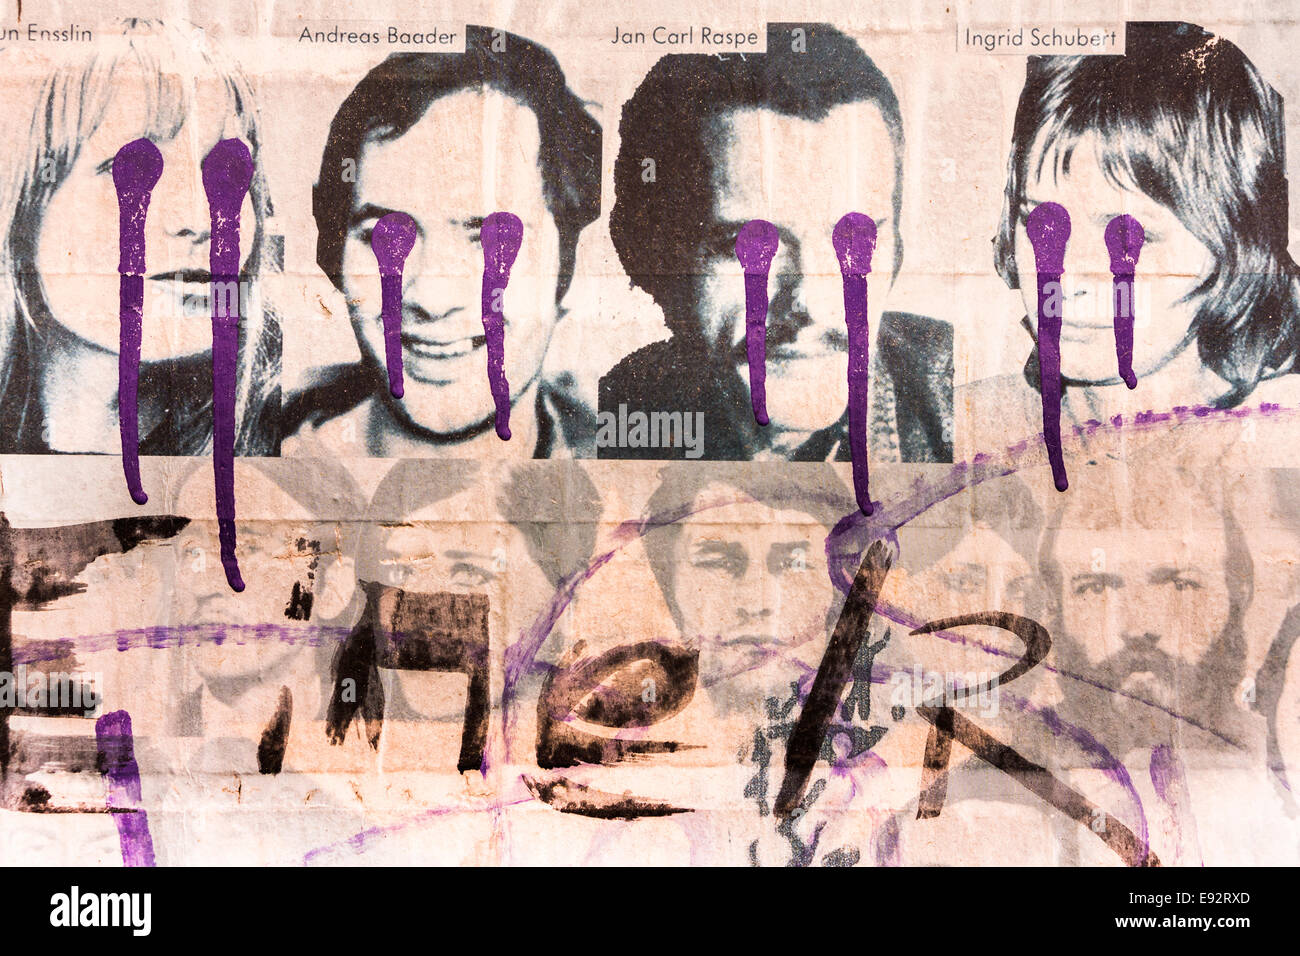 faded and painted over poster showing various red army faction members among them gudrun ensslin, andreas baader, - Stock Image